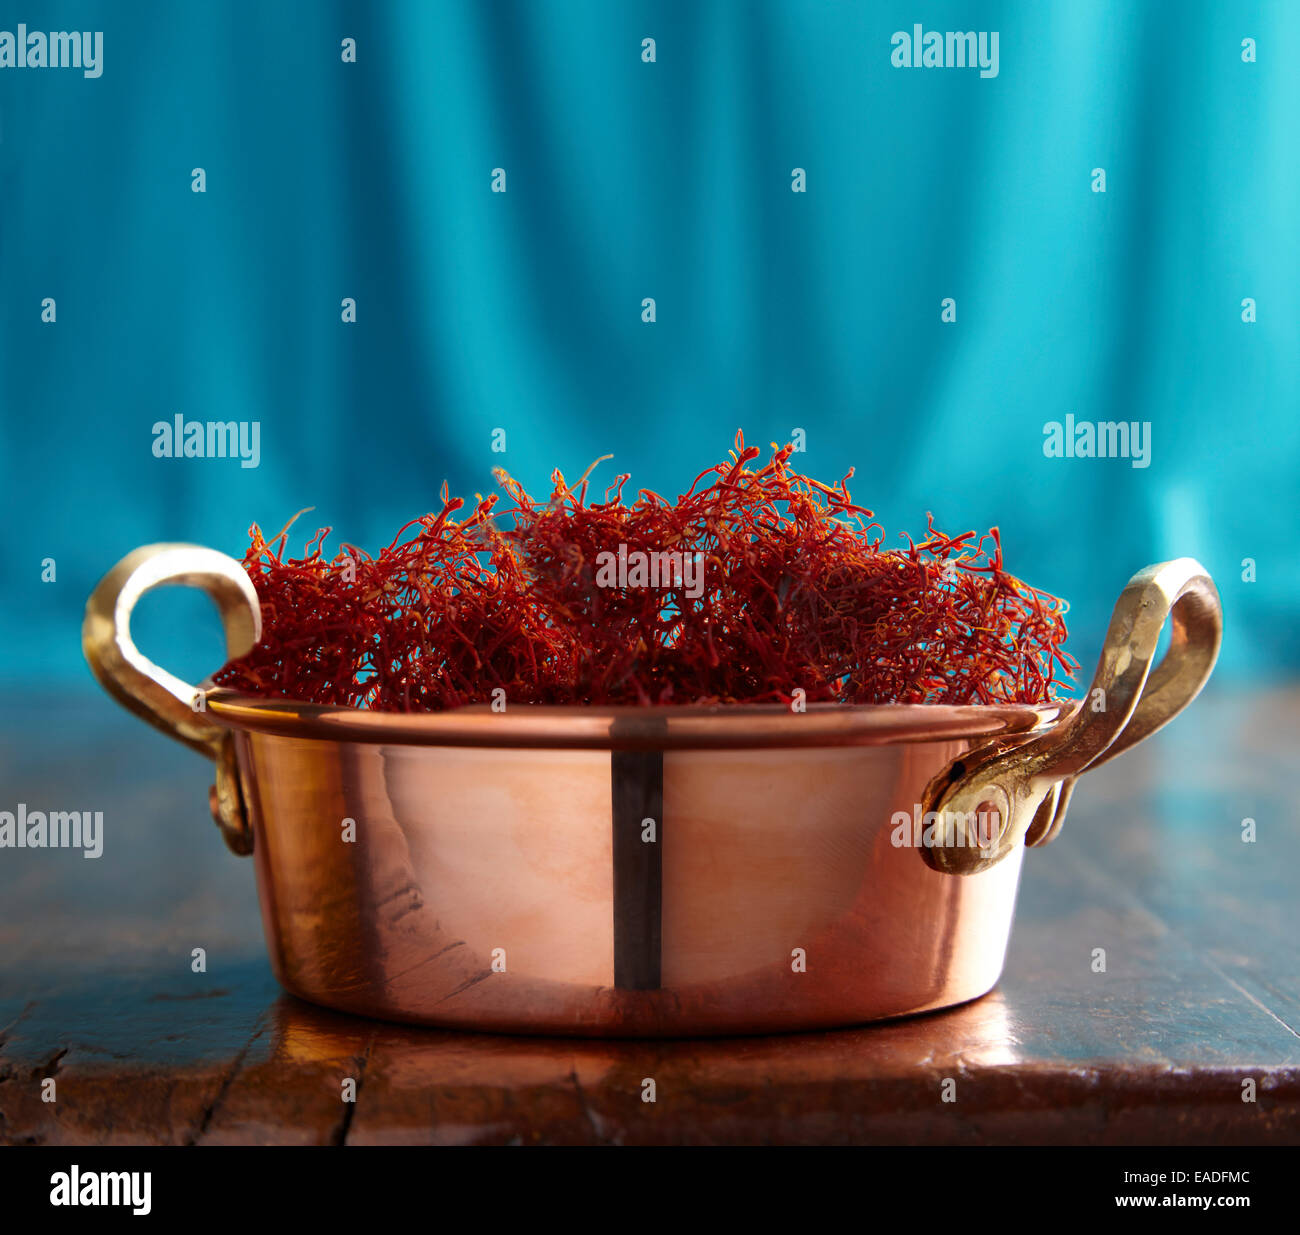 Saffron in a copper pot on a wood table - Stock Image